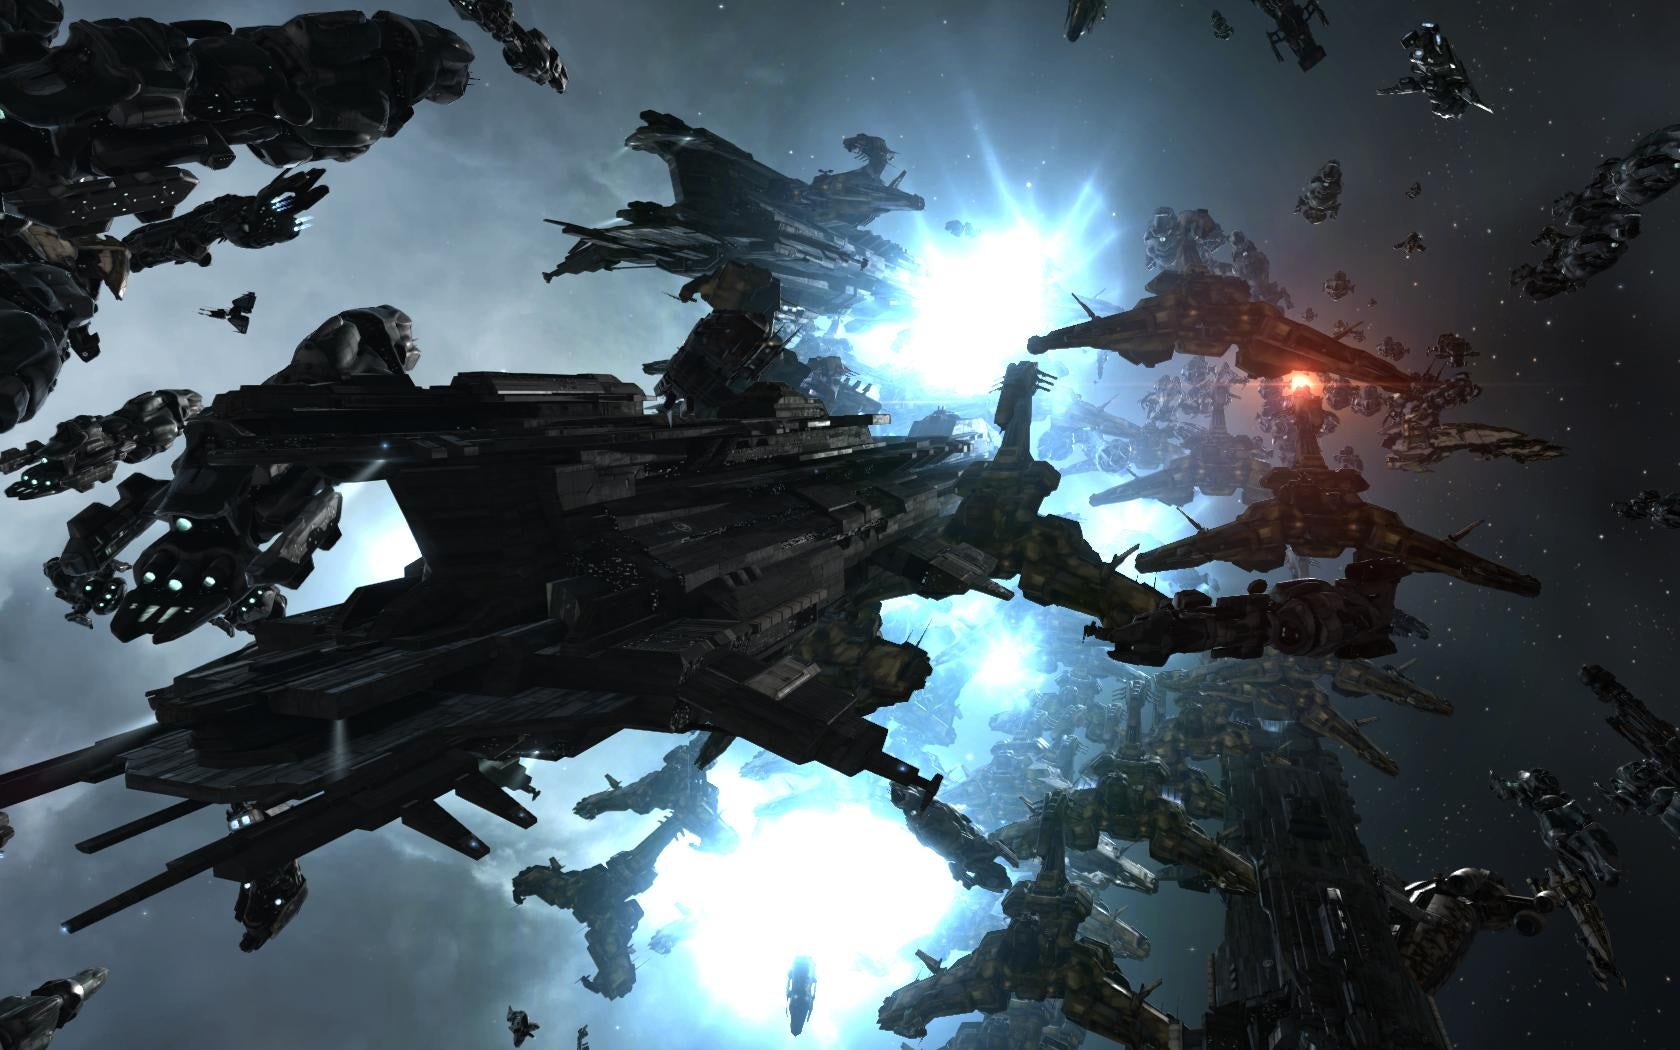 It's Never Too Late To Start Exploring, Battling, Or Running Scams In EVE Online